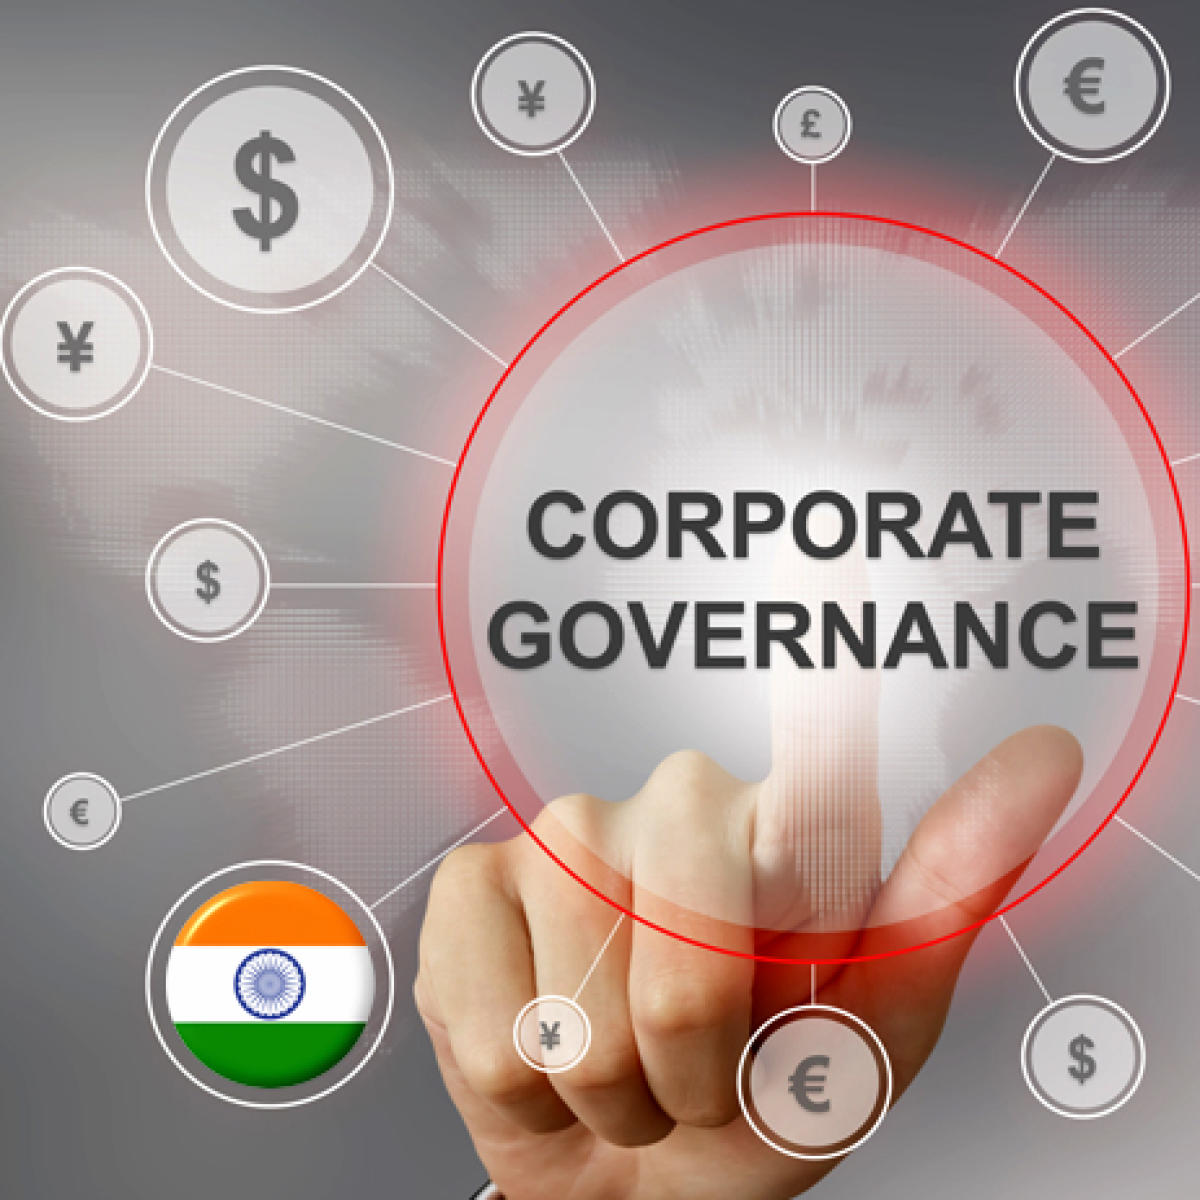 Is corporate governance superior to country governance?